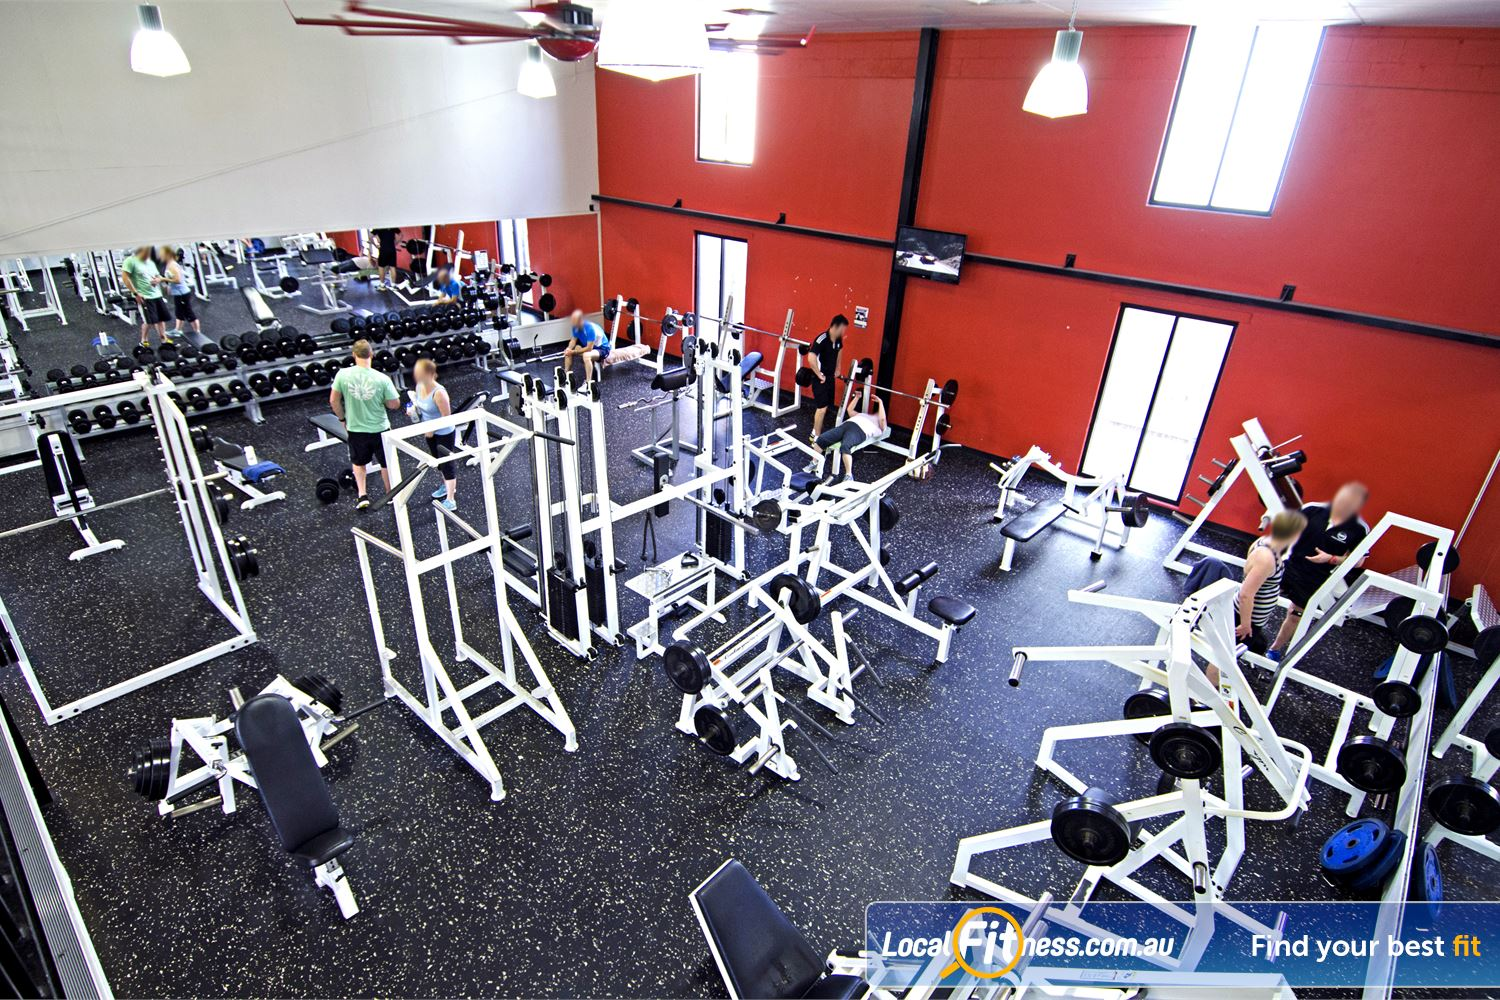 Goodlife Health Clubs Graceville Our Graceville gym includes a comprehensive range of dumbbells and barbells.